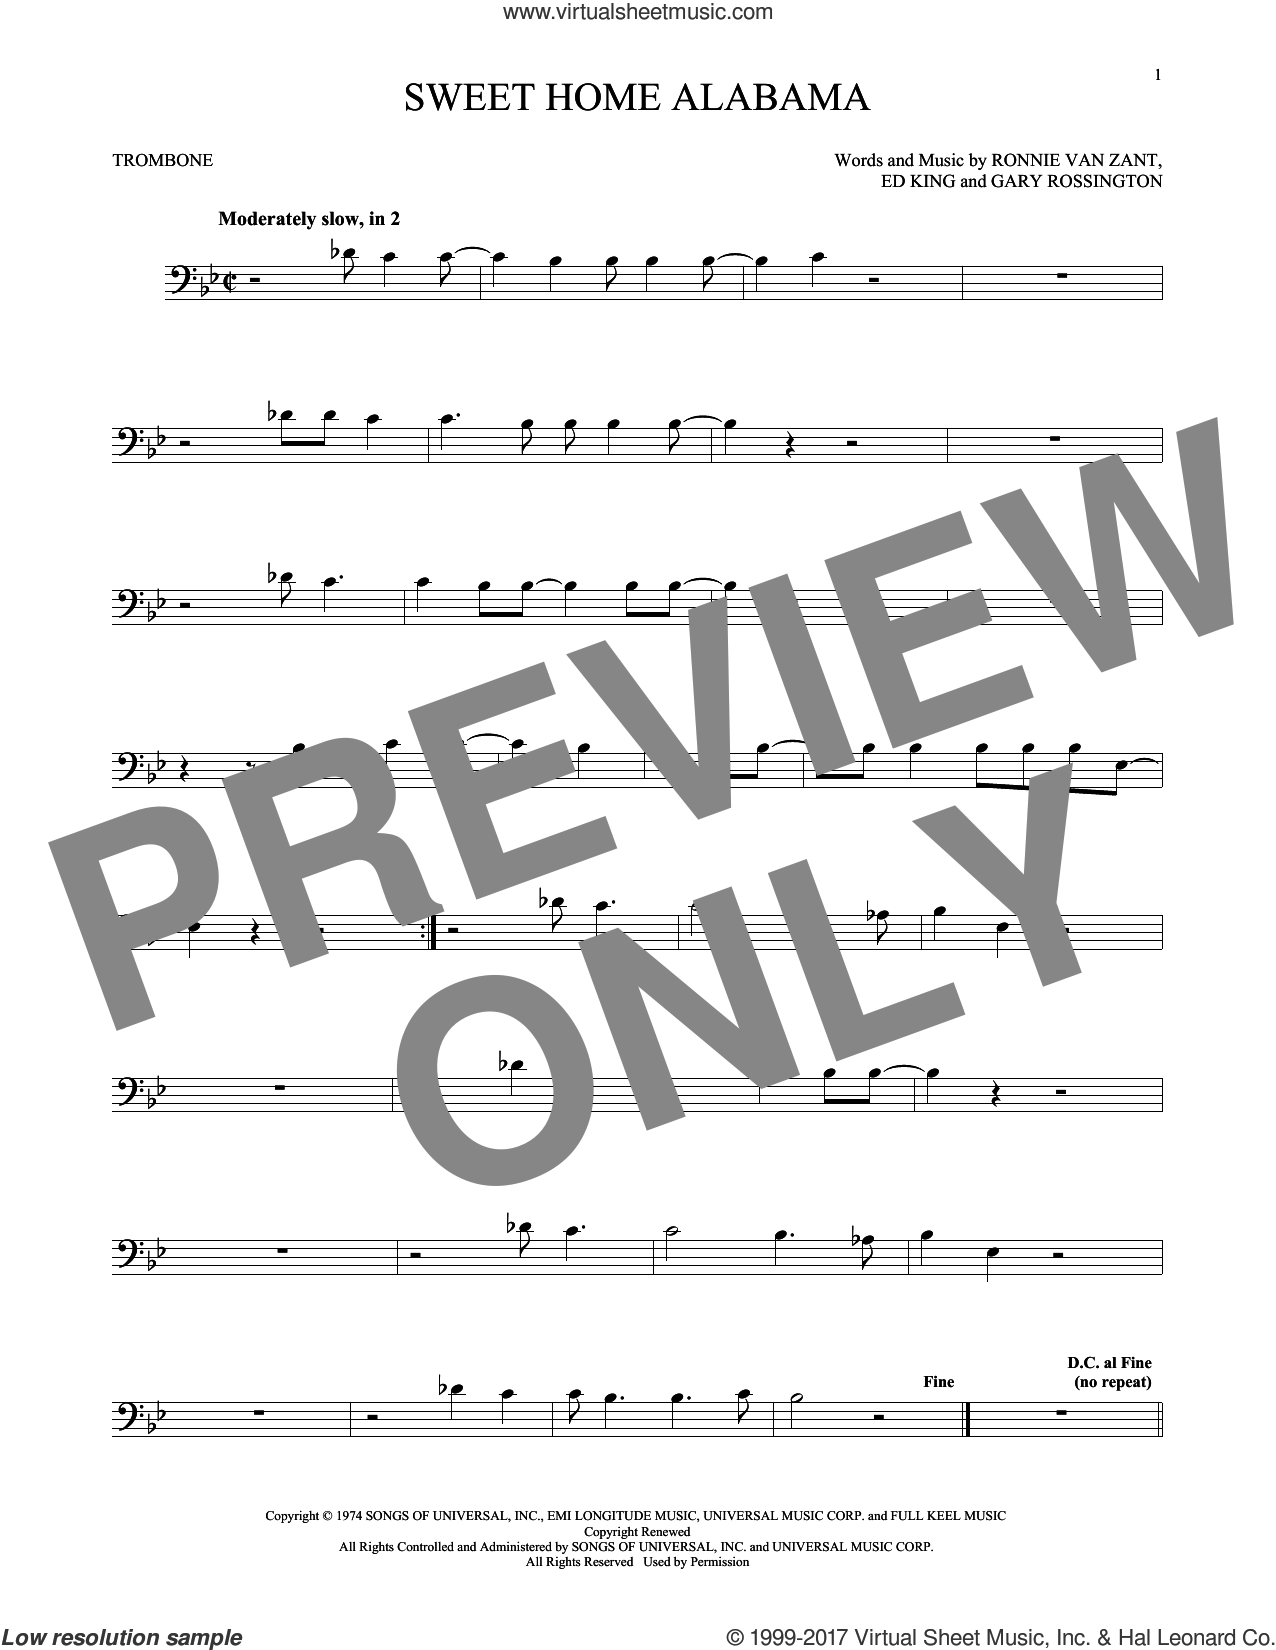 Sweet Home Alabama sheet music for trombone solo by Lynyrd Skynyrd, Edward King, Gary Rossington and Ronnie Van Zant, intermediate skill level